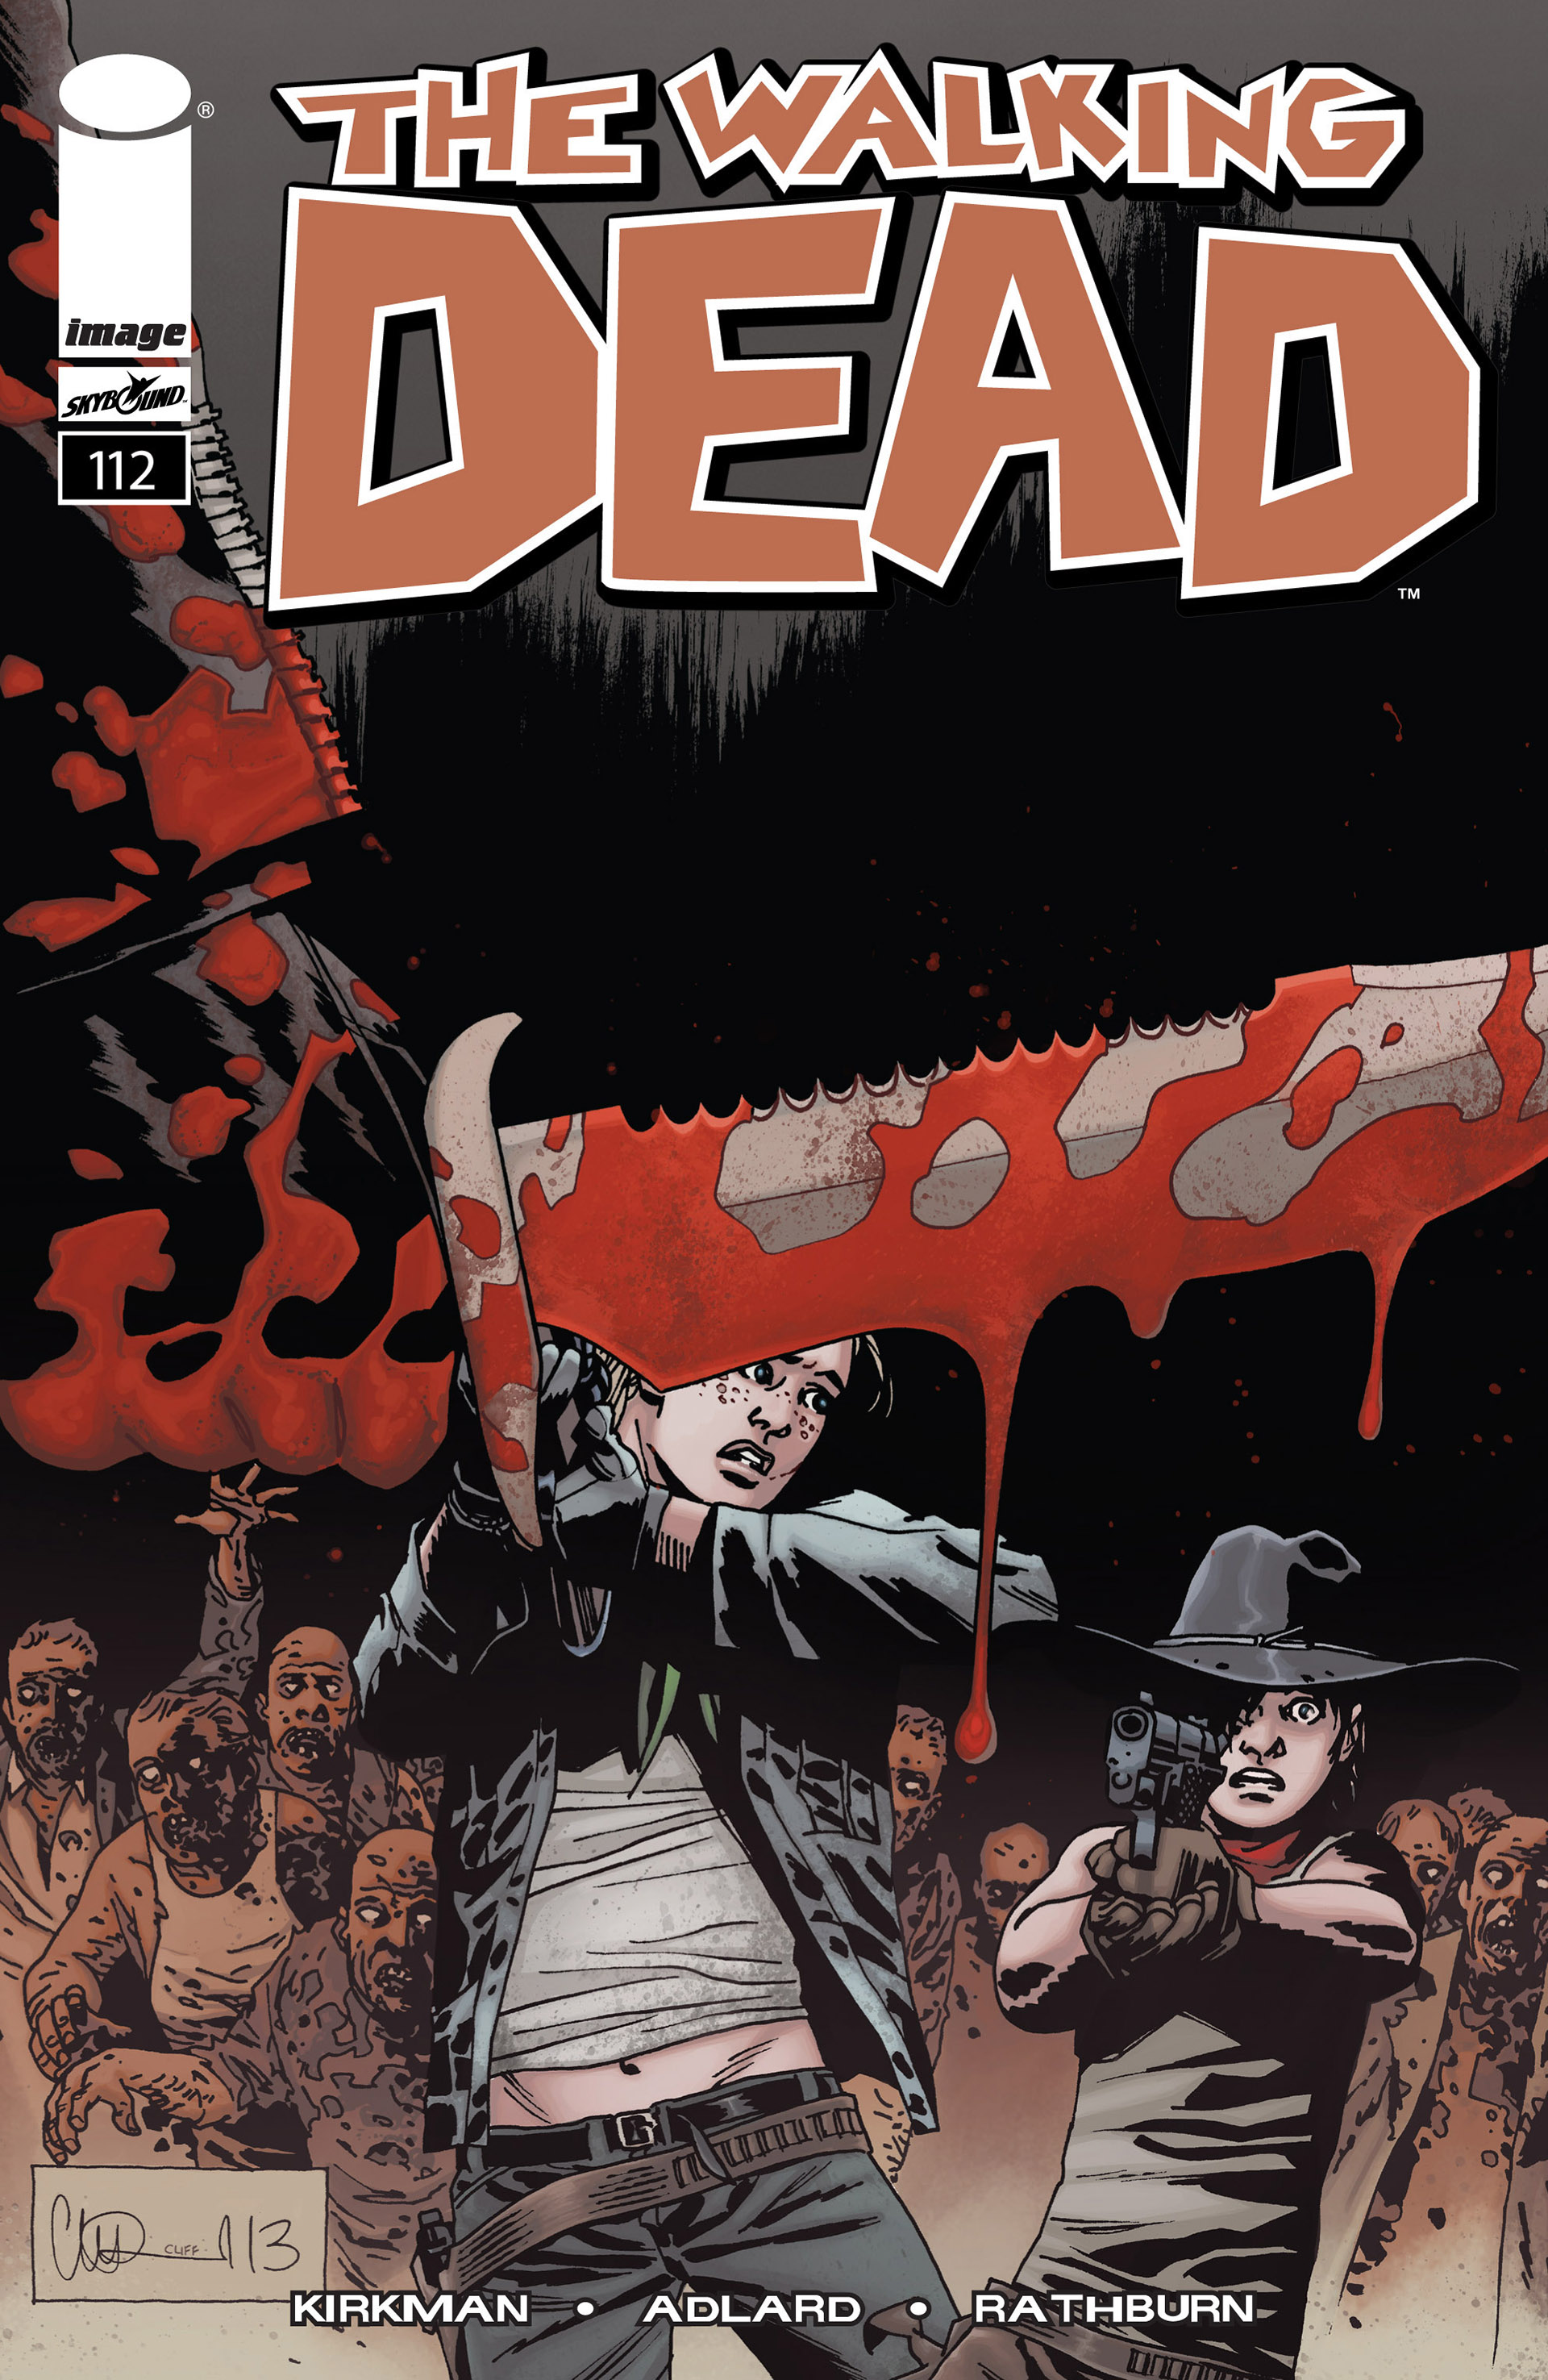 The Walking Dead 112 Page 1